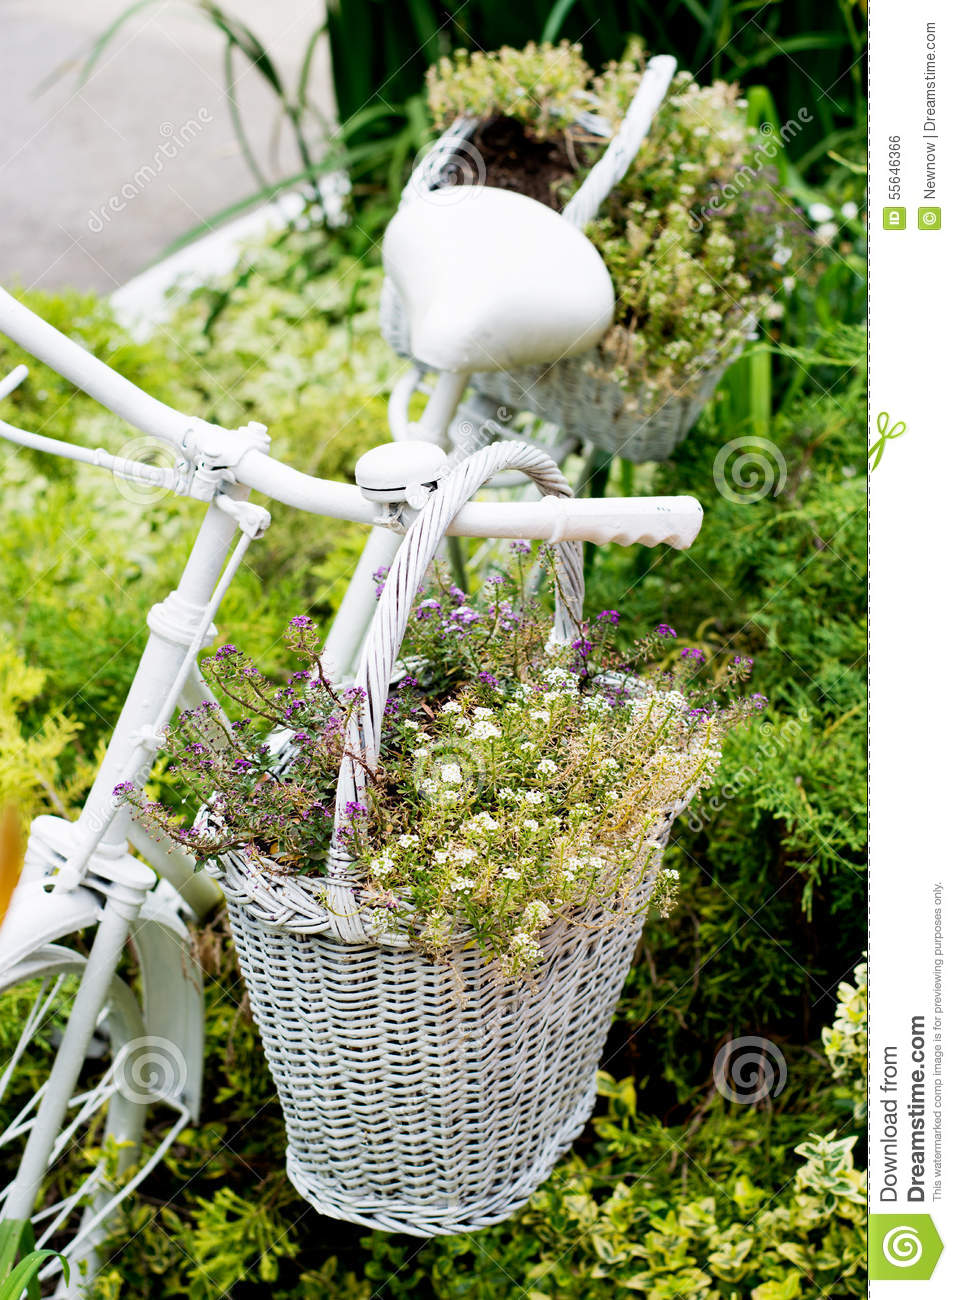 old time photo ideas - Old Bicycle Ideas For Gardening Stock Image